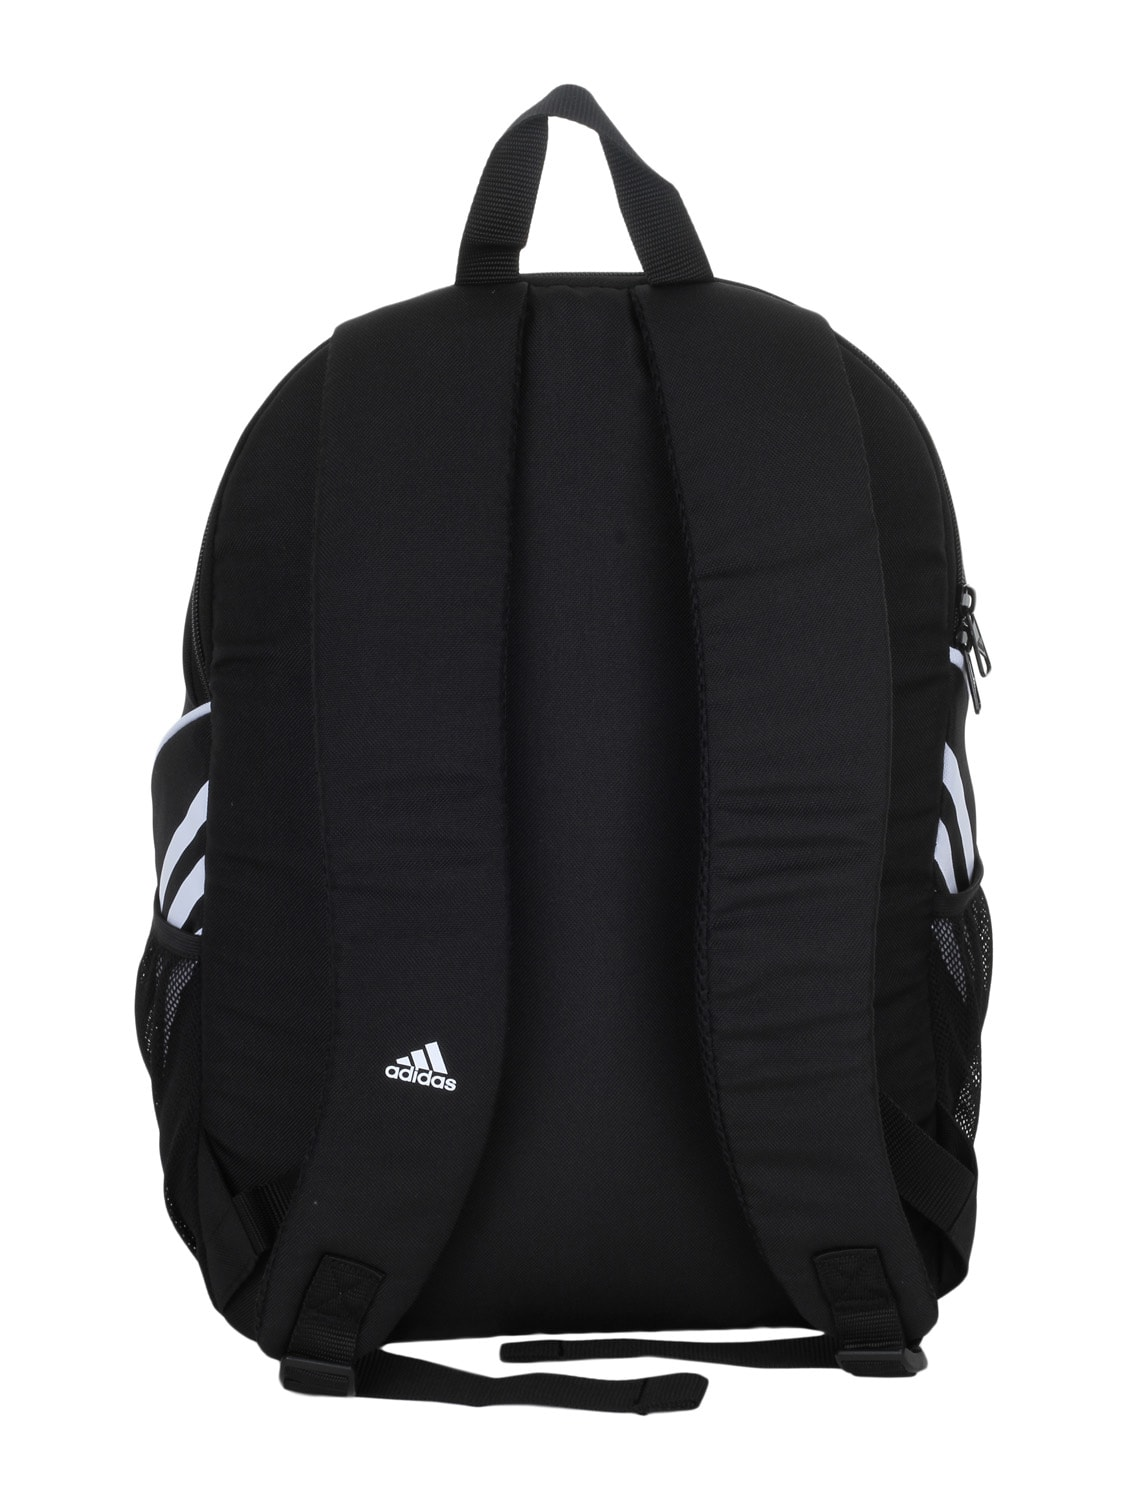 Buy Black Canvas Backpack by Adidas - Online shopping for Backpacks in India    13093414 13419c1481